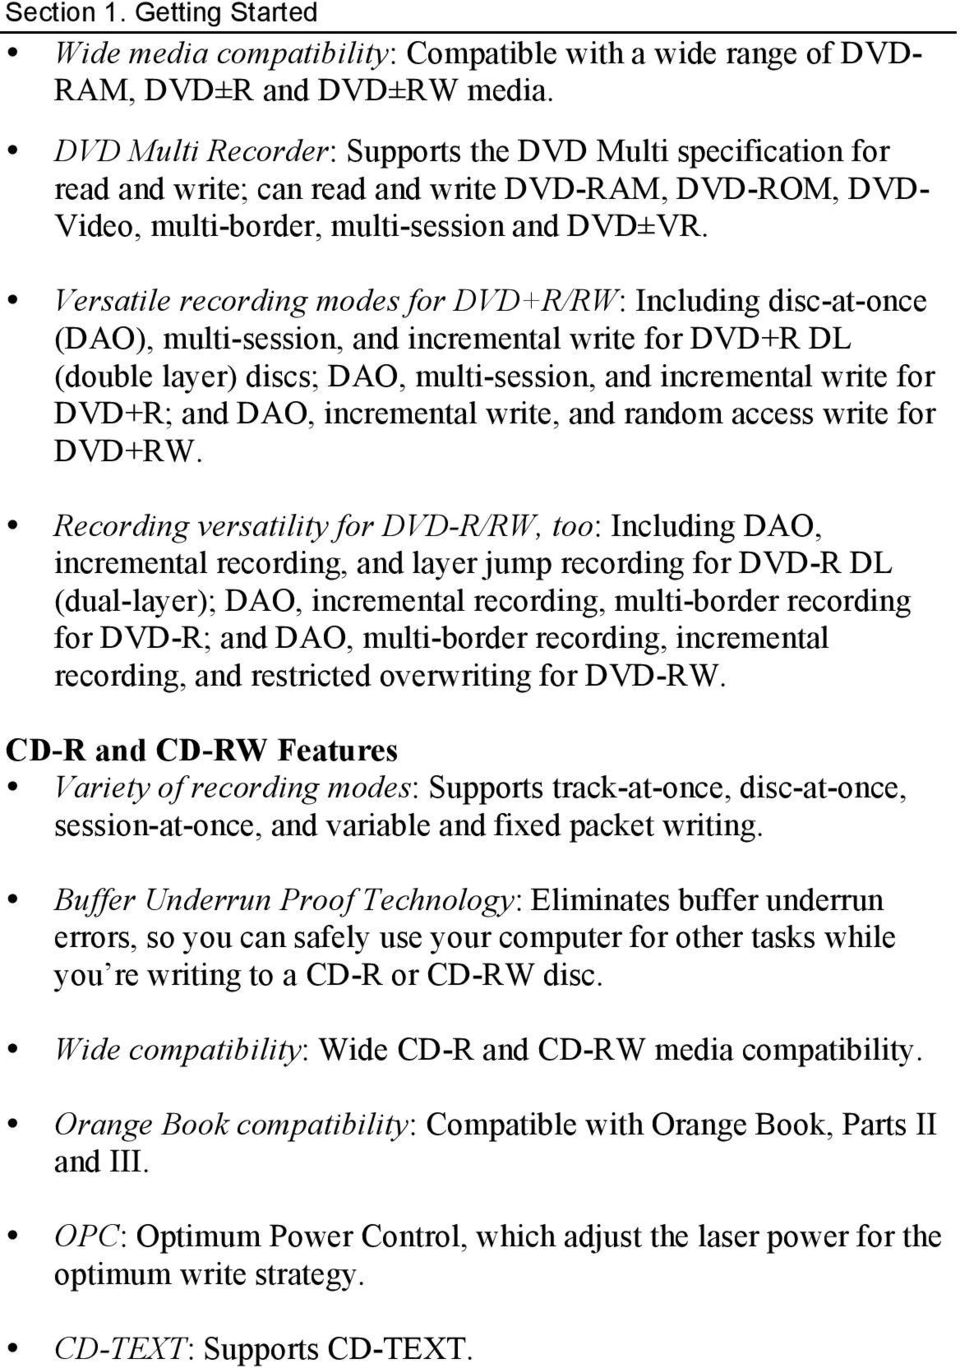 Versatile recording modes for DVD+R/RW: Including disc-at-once (DAO), multi-session, and incremental write for DVD+R DL (double layer) discs; DAO, multi-session, and incremental write for DVD+R; and